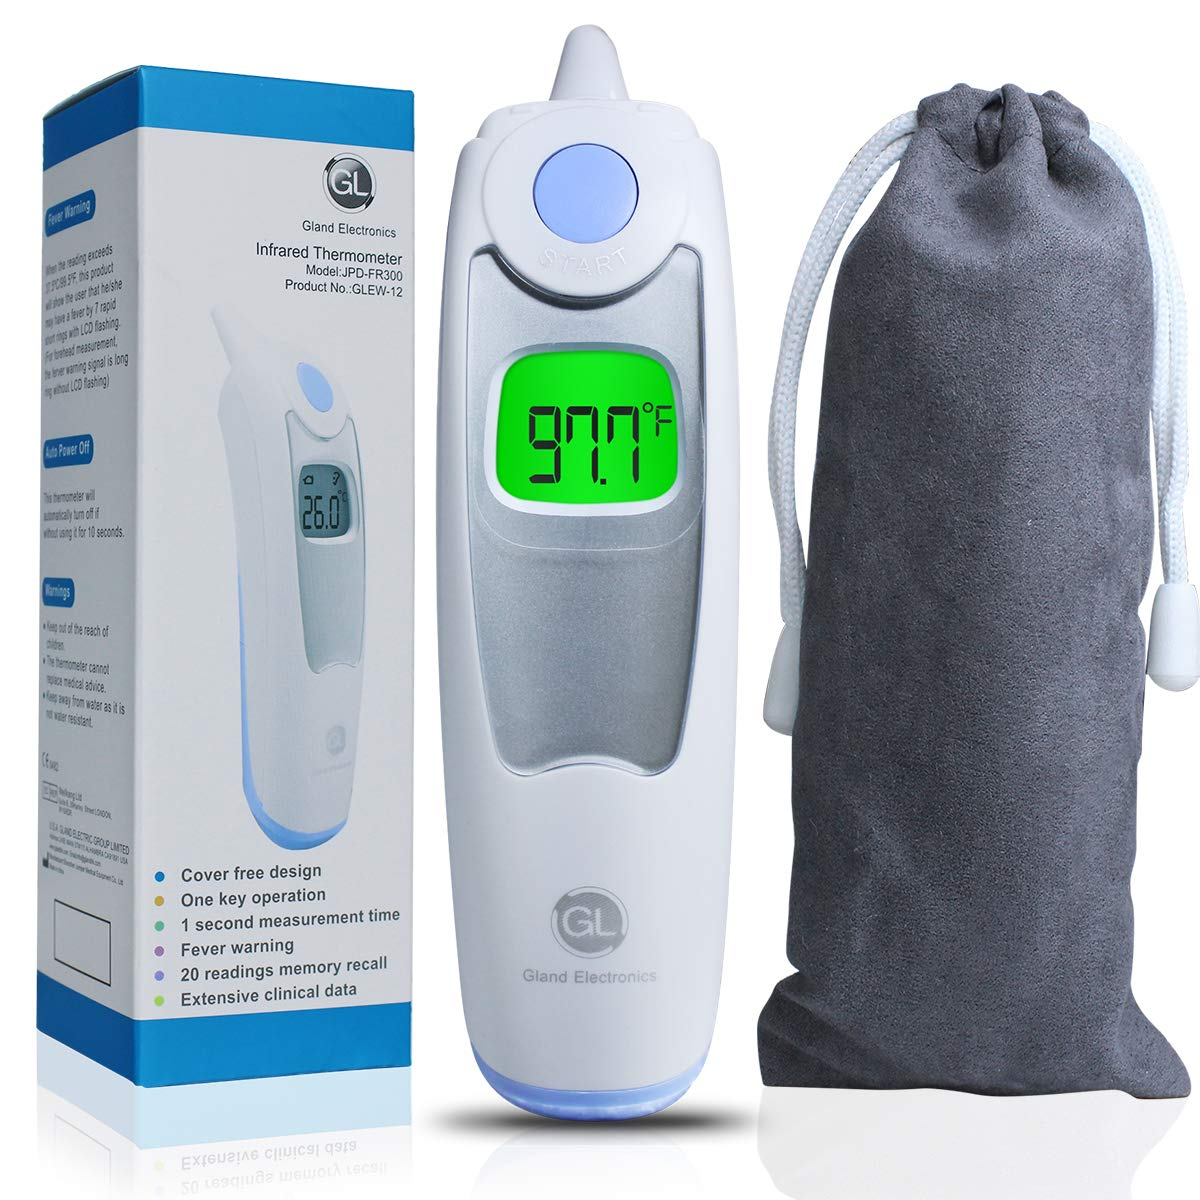 Baby Ear Thermometer for Fever Gland Medical Digital Ear Thermometer for Baby, Infants,Toddlers, and Adults FDA Approved by GL Gland Electronics (Image #9)